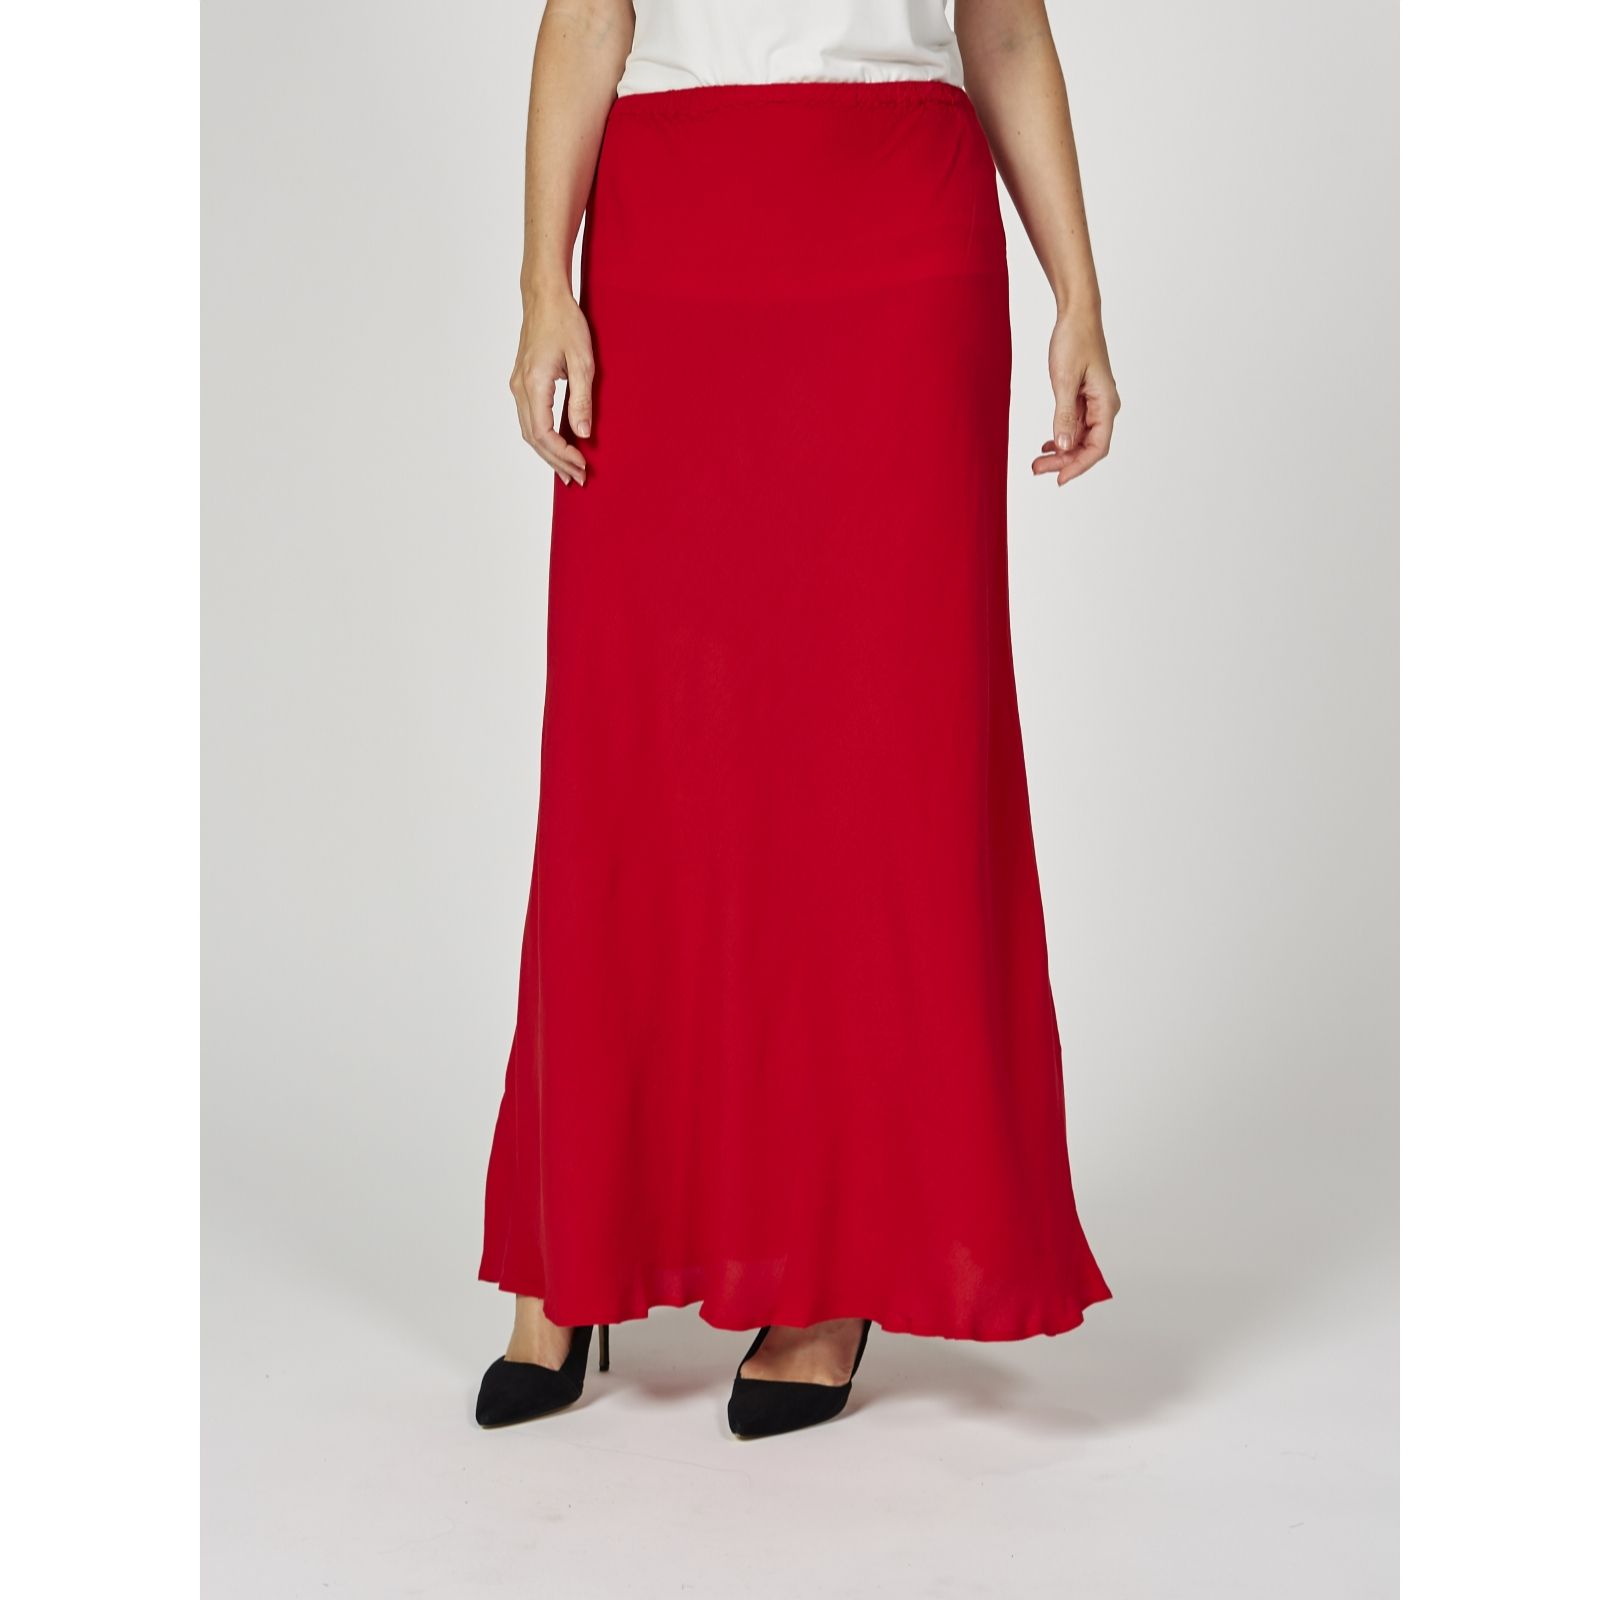 142932953e Ghost London Crepe Bias Cut Odelia Maxi Skirt - QVC UK